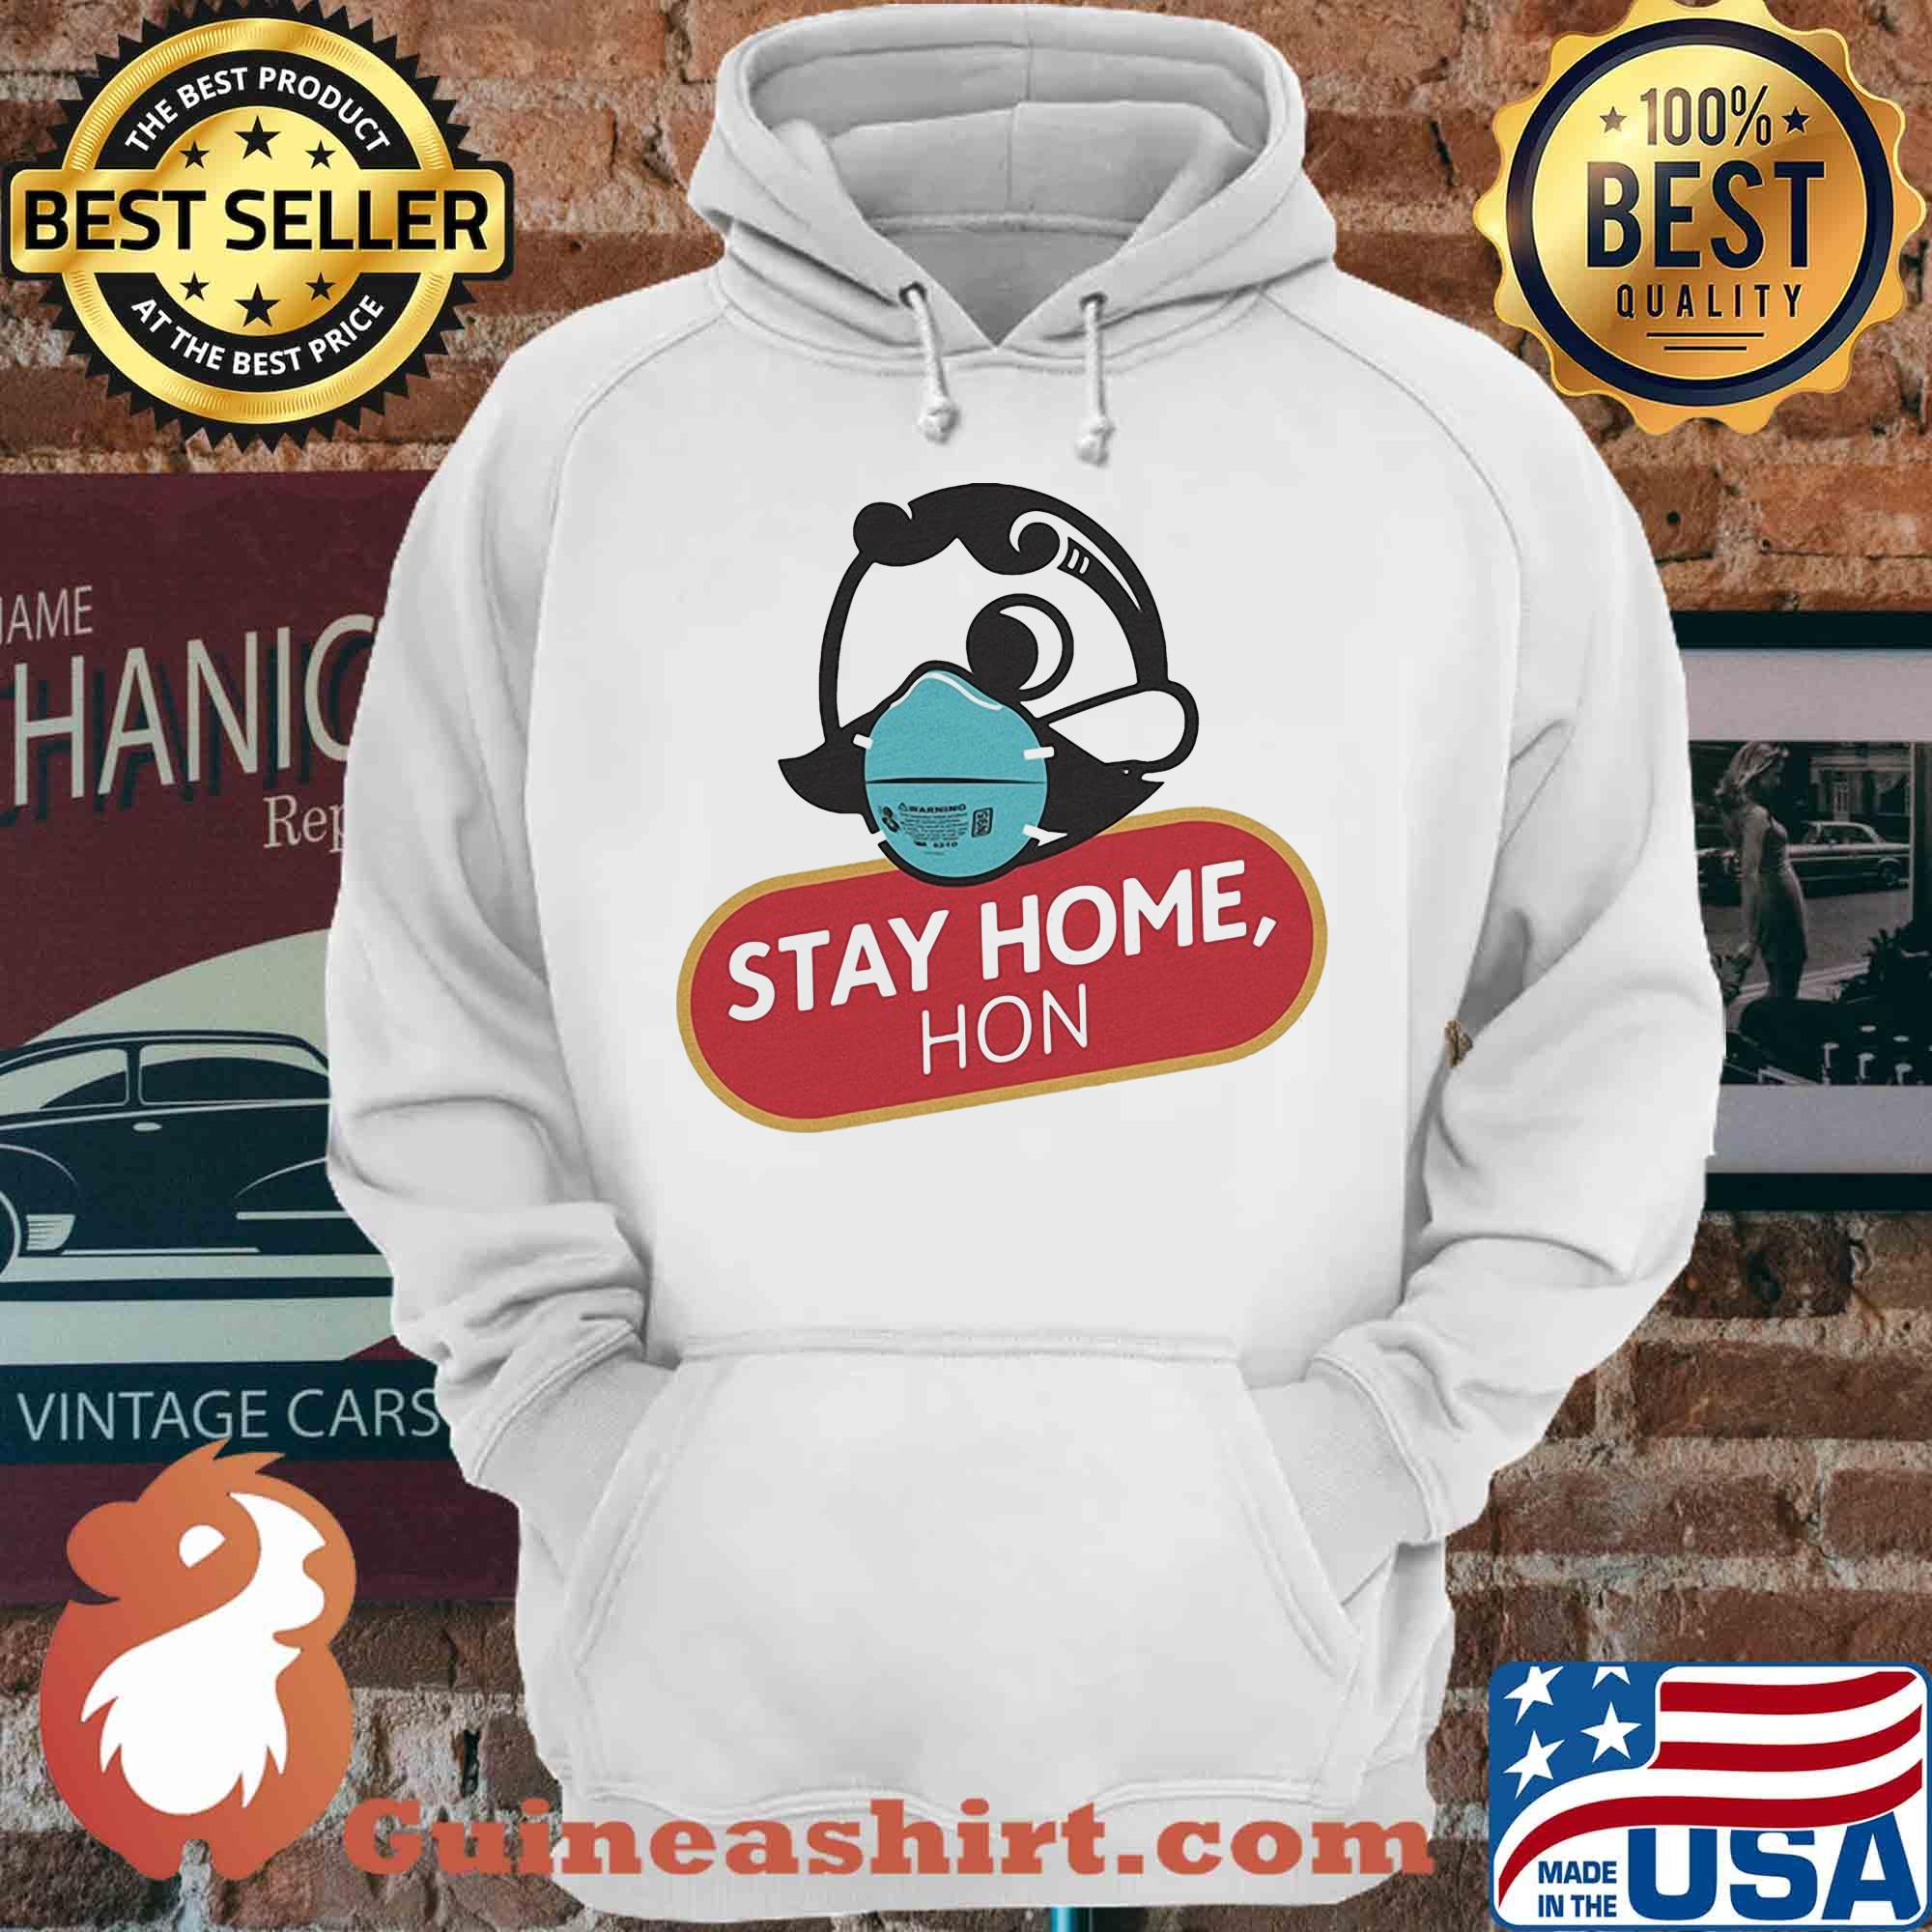 STAY HOME HON COVID-19 SHIRT